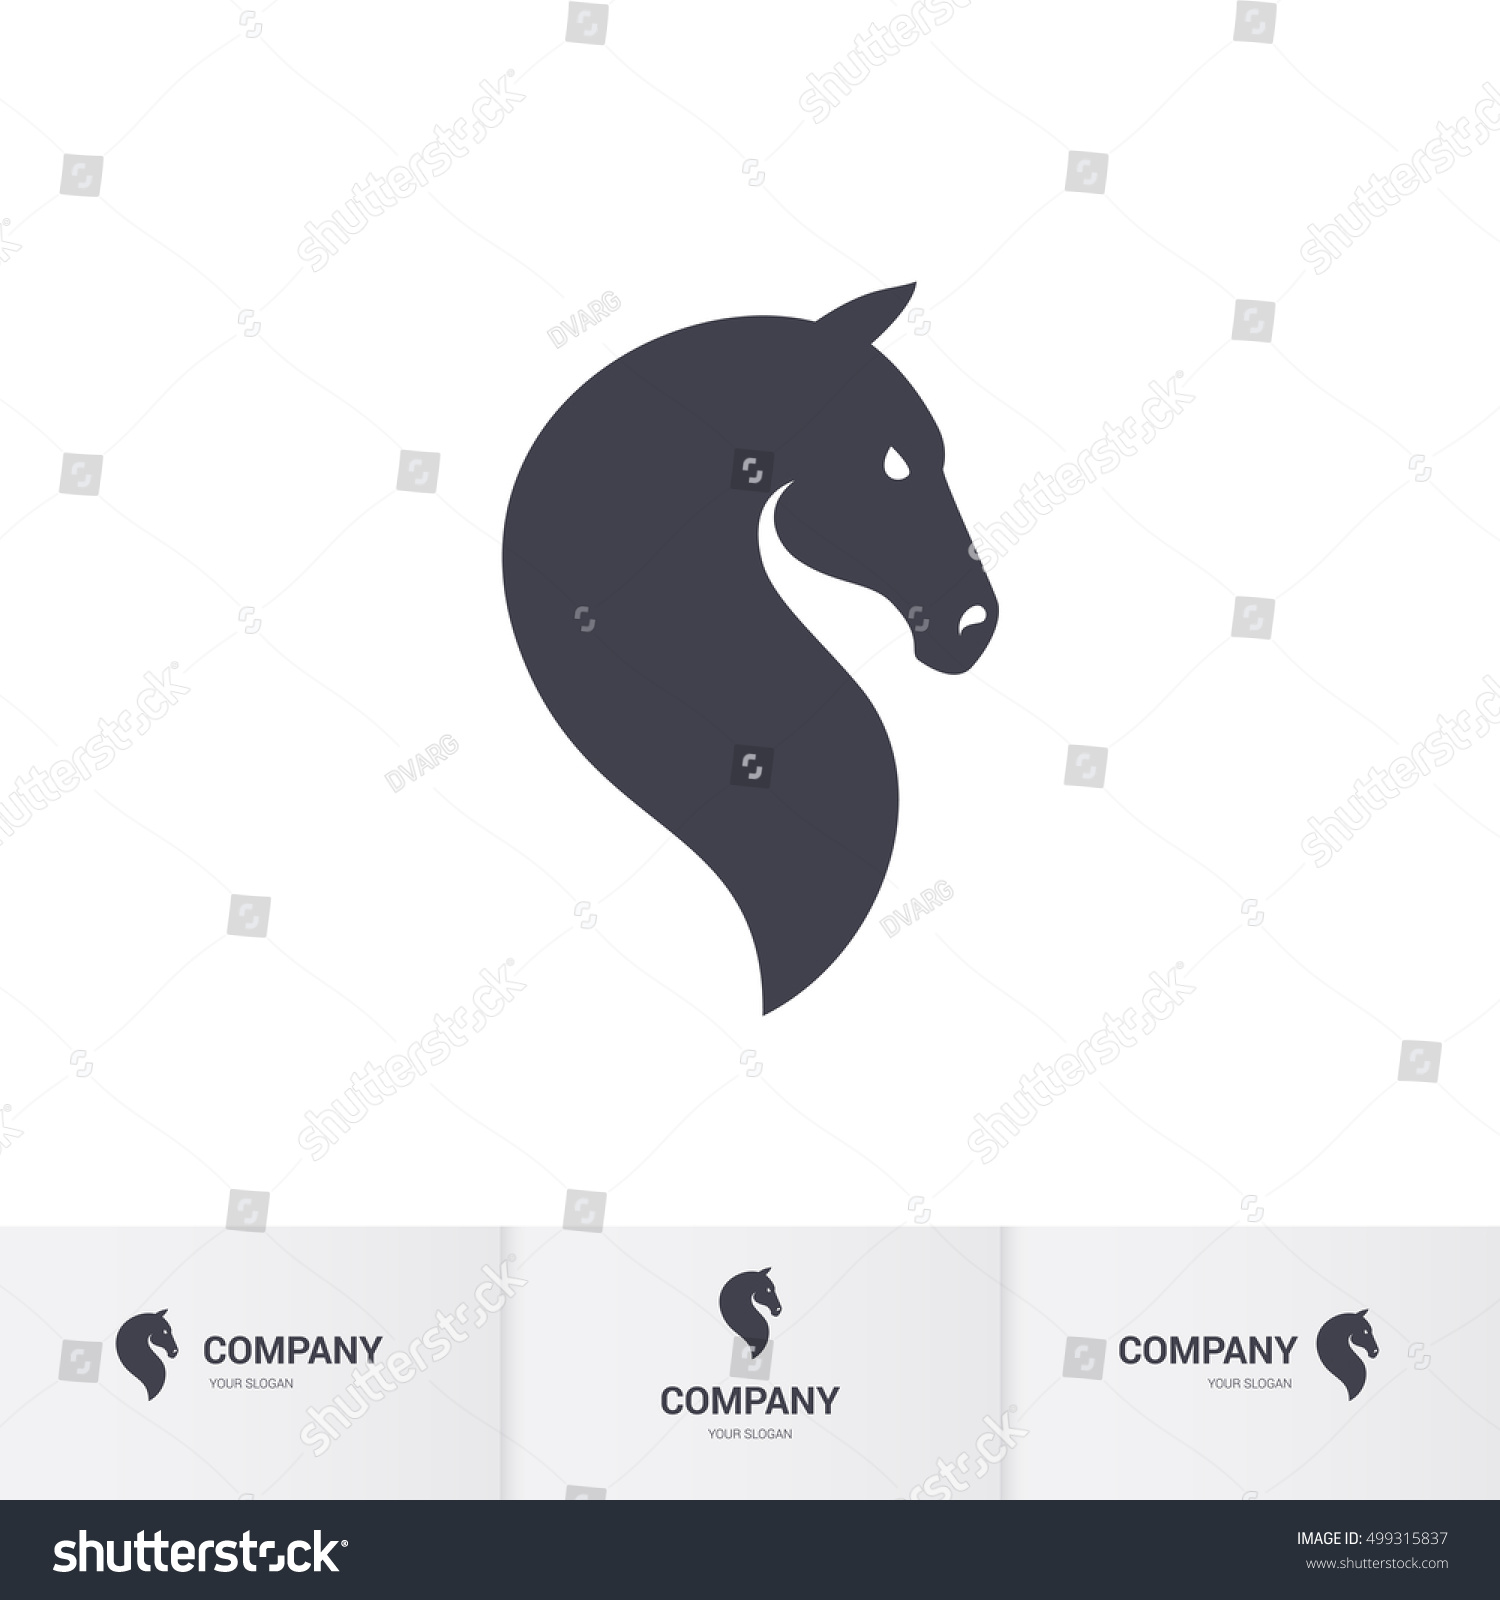 Simple cartoon horse head